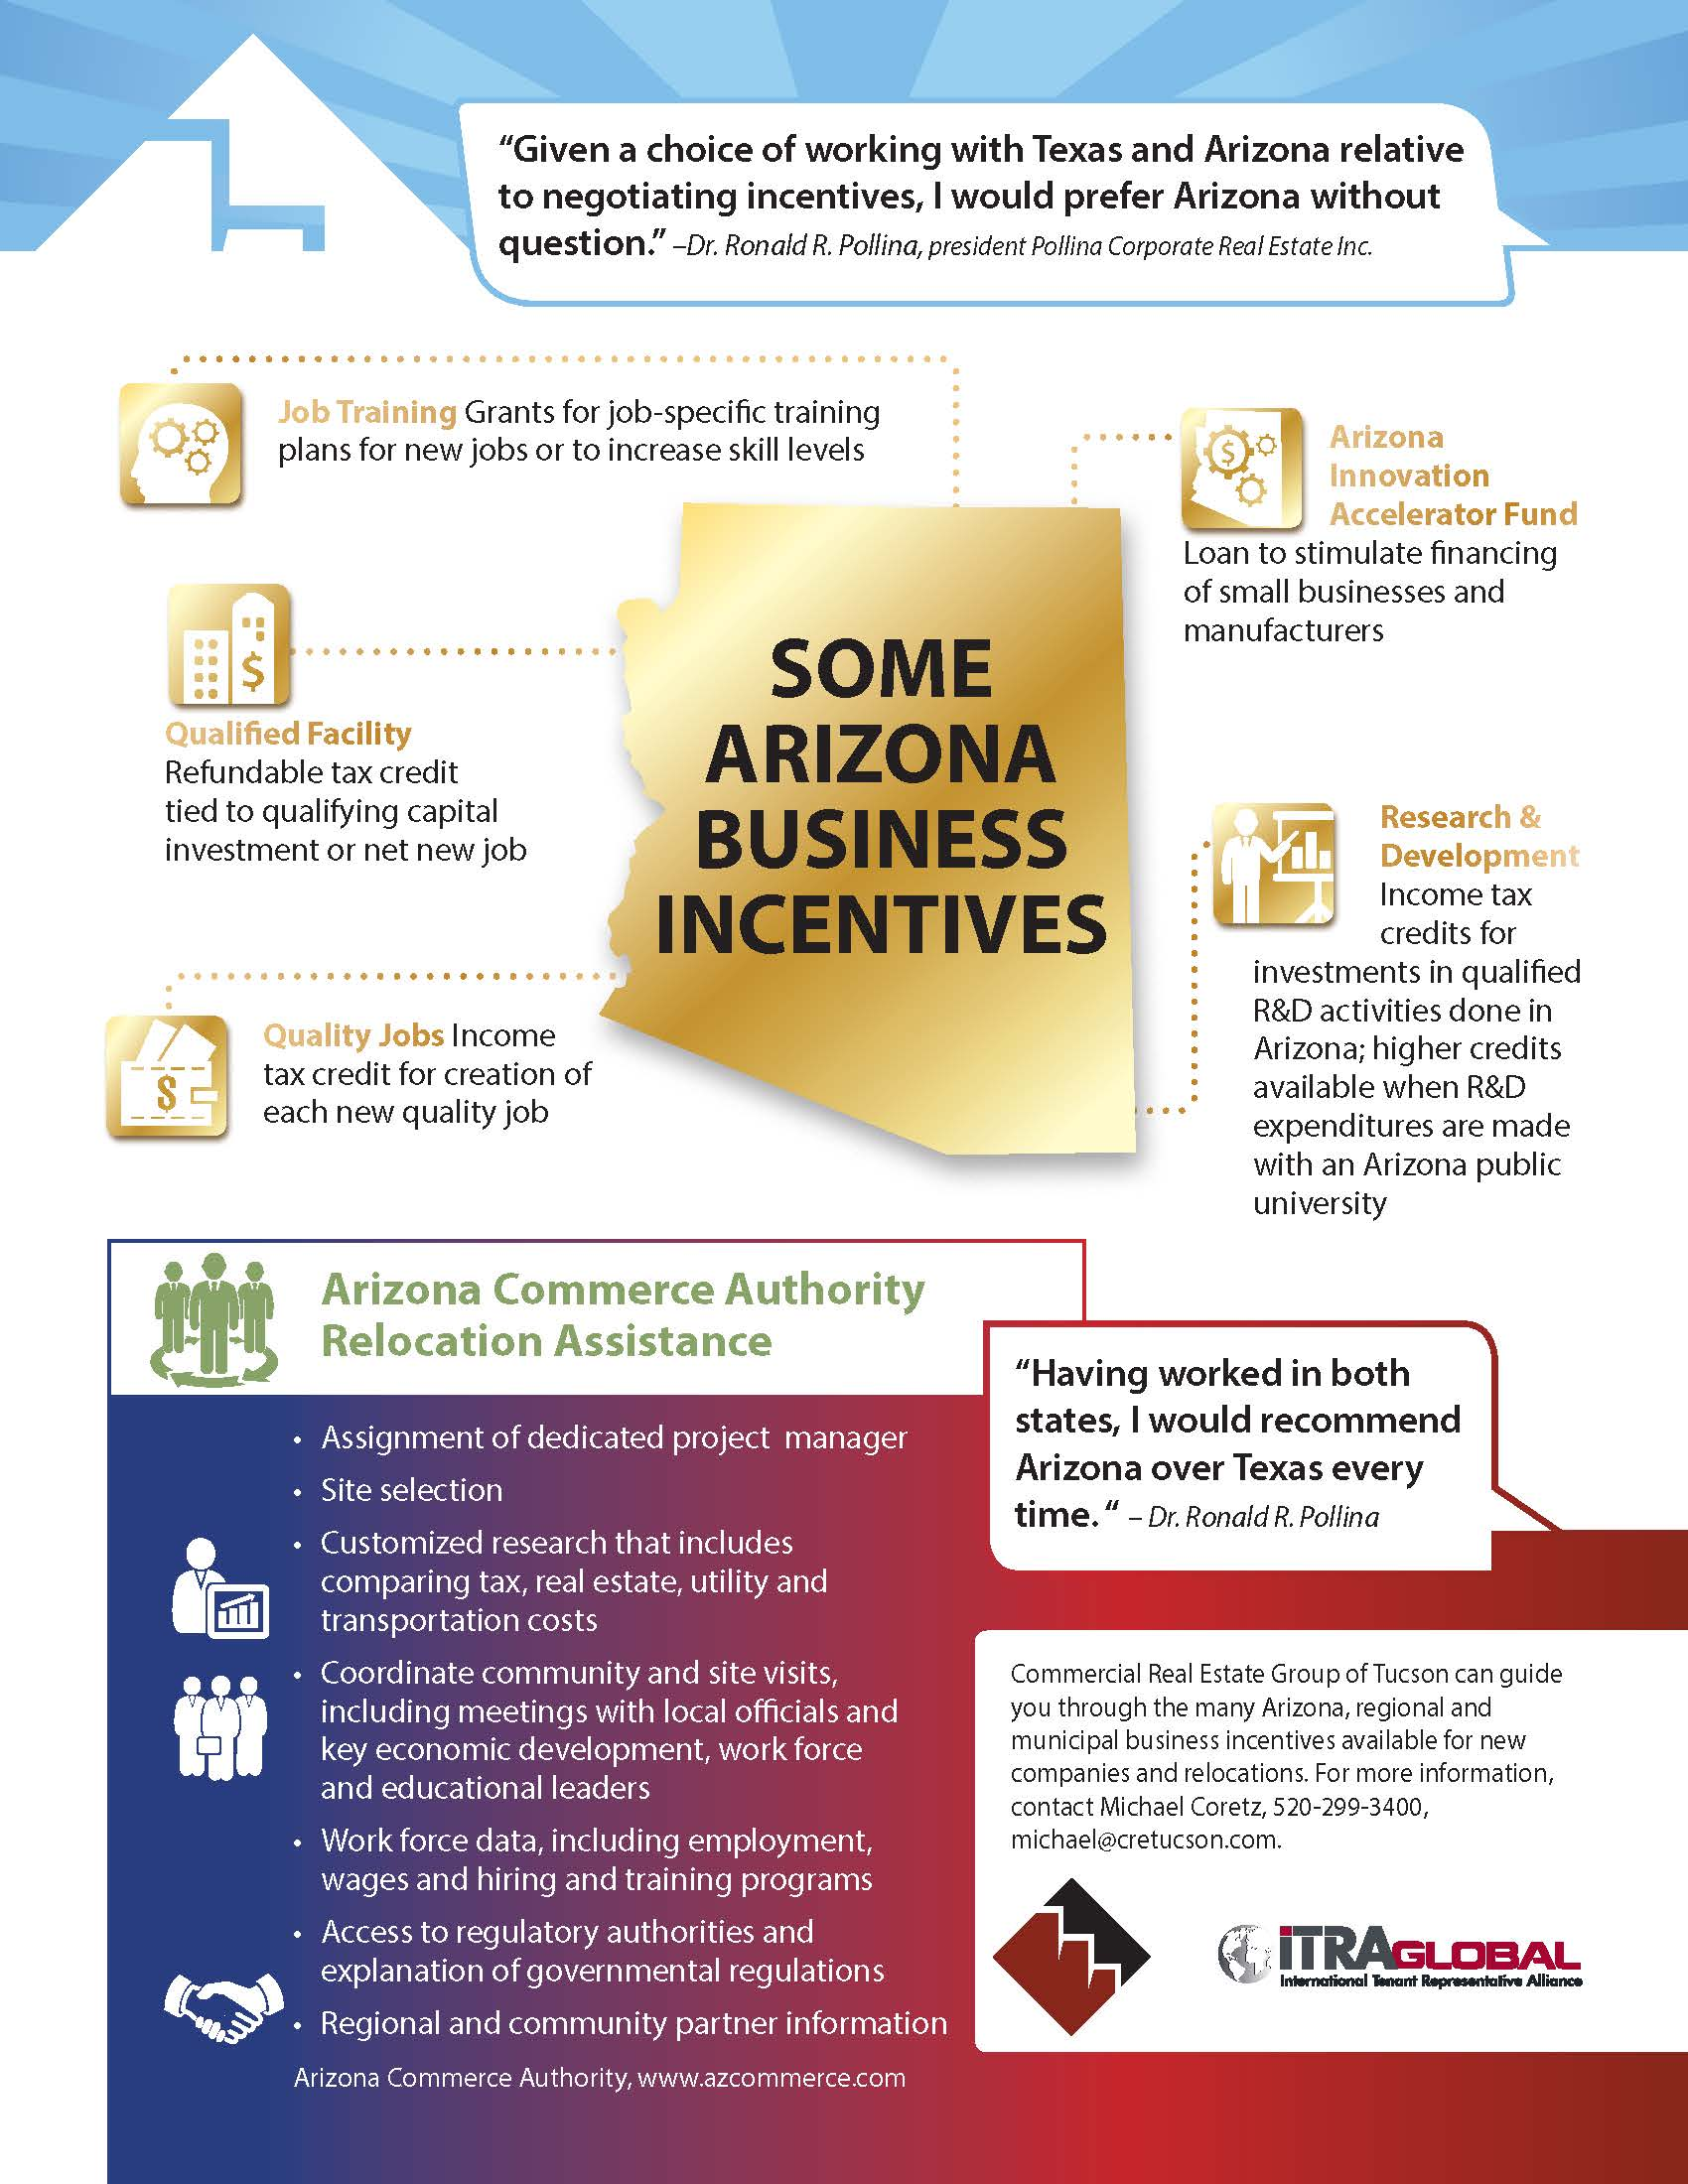 2013 Arizona State Business Incentives Infographic (IMG)